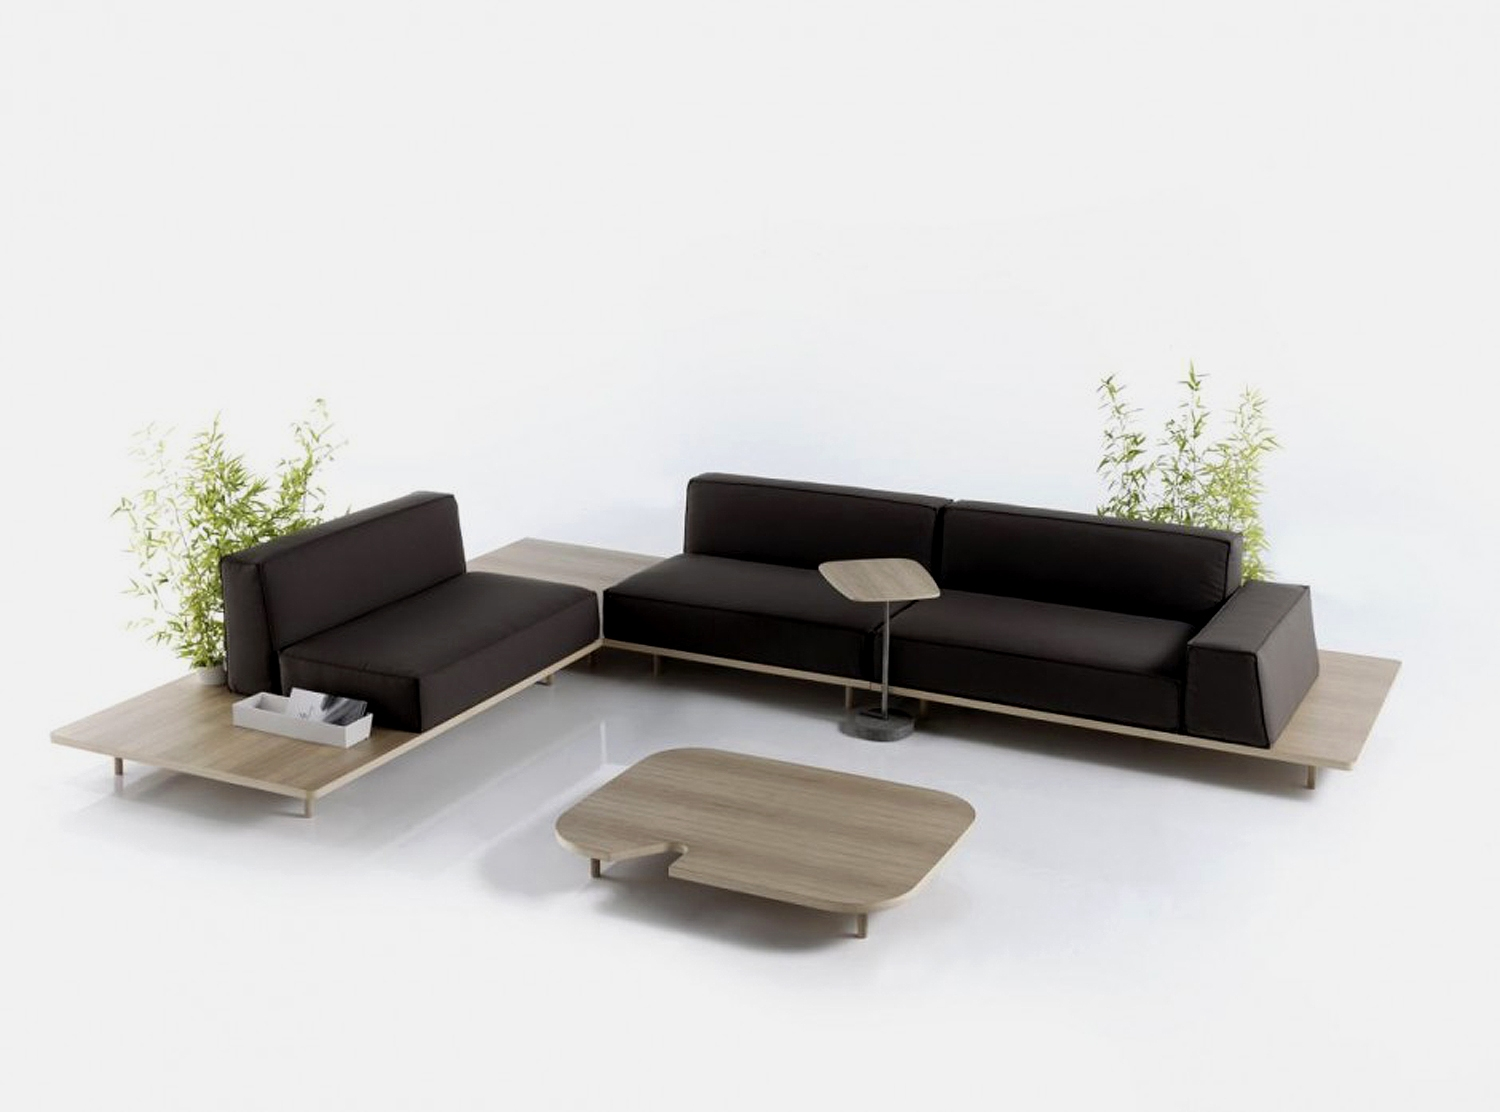 Best 25 Modern Sofa Designs Ideas On Pinterest Modern Couch With Regard To Contemporary Sofa Chairs (Image 1 of 15)